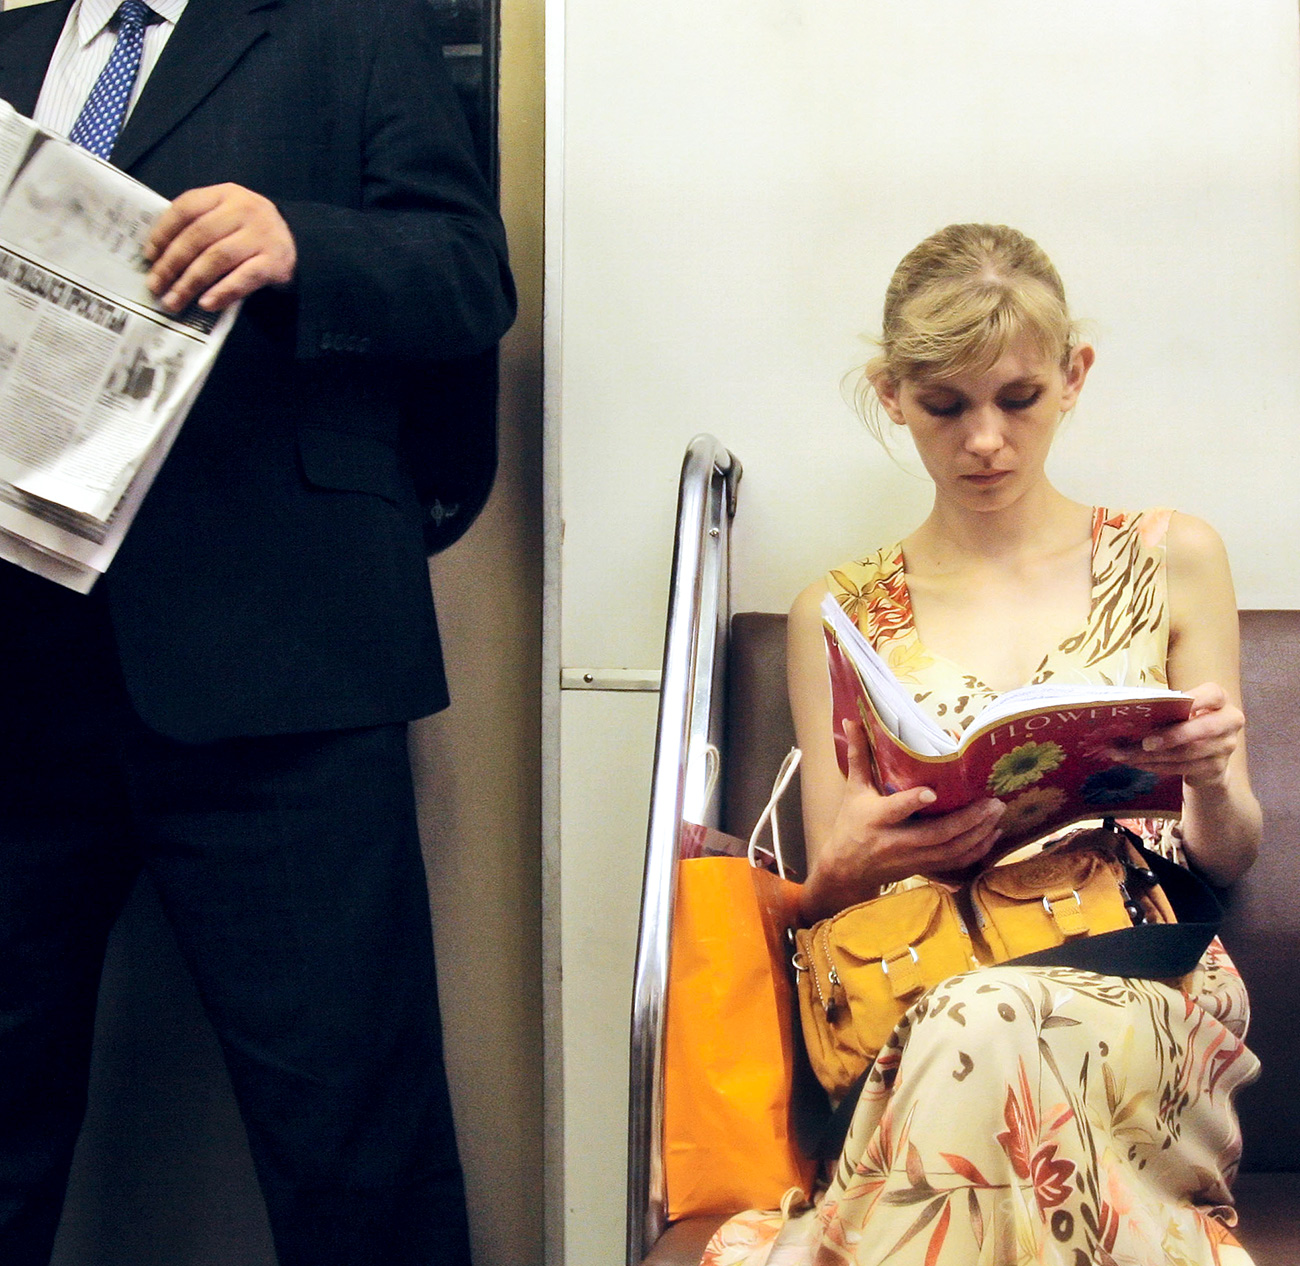 ITAR-TASS 51: MOSCOW, RUSSIA. AUGUST 24. Girl reads an exercise book on a Moscow Metro train.